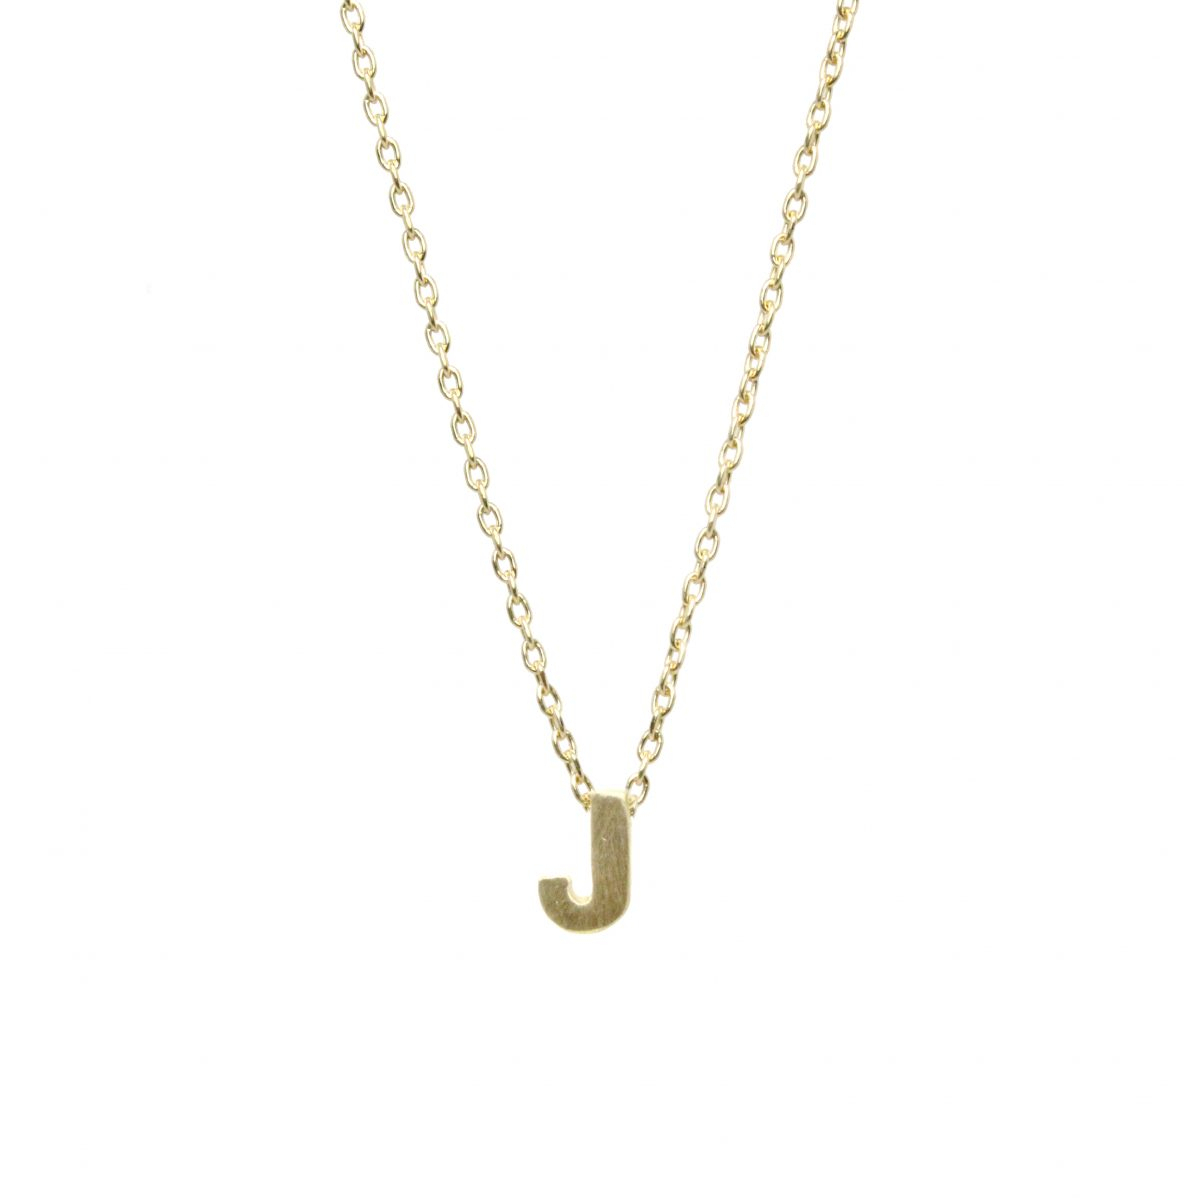 "Micro ""j"" Initial Necklace With Regard To Current Classic Cable Chain Necklaces (View 17 of 25)"